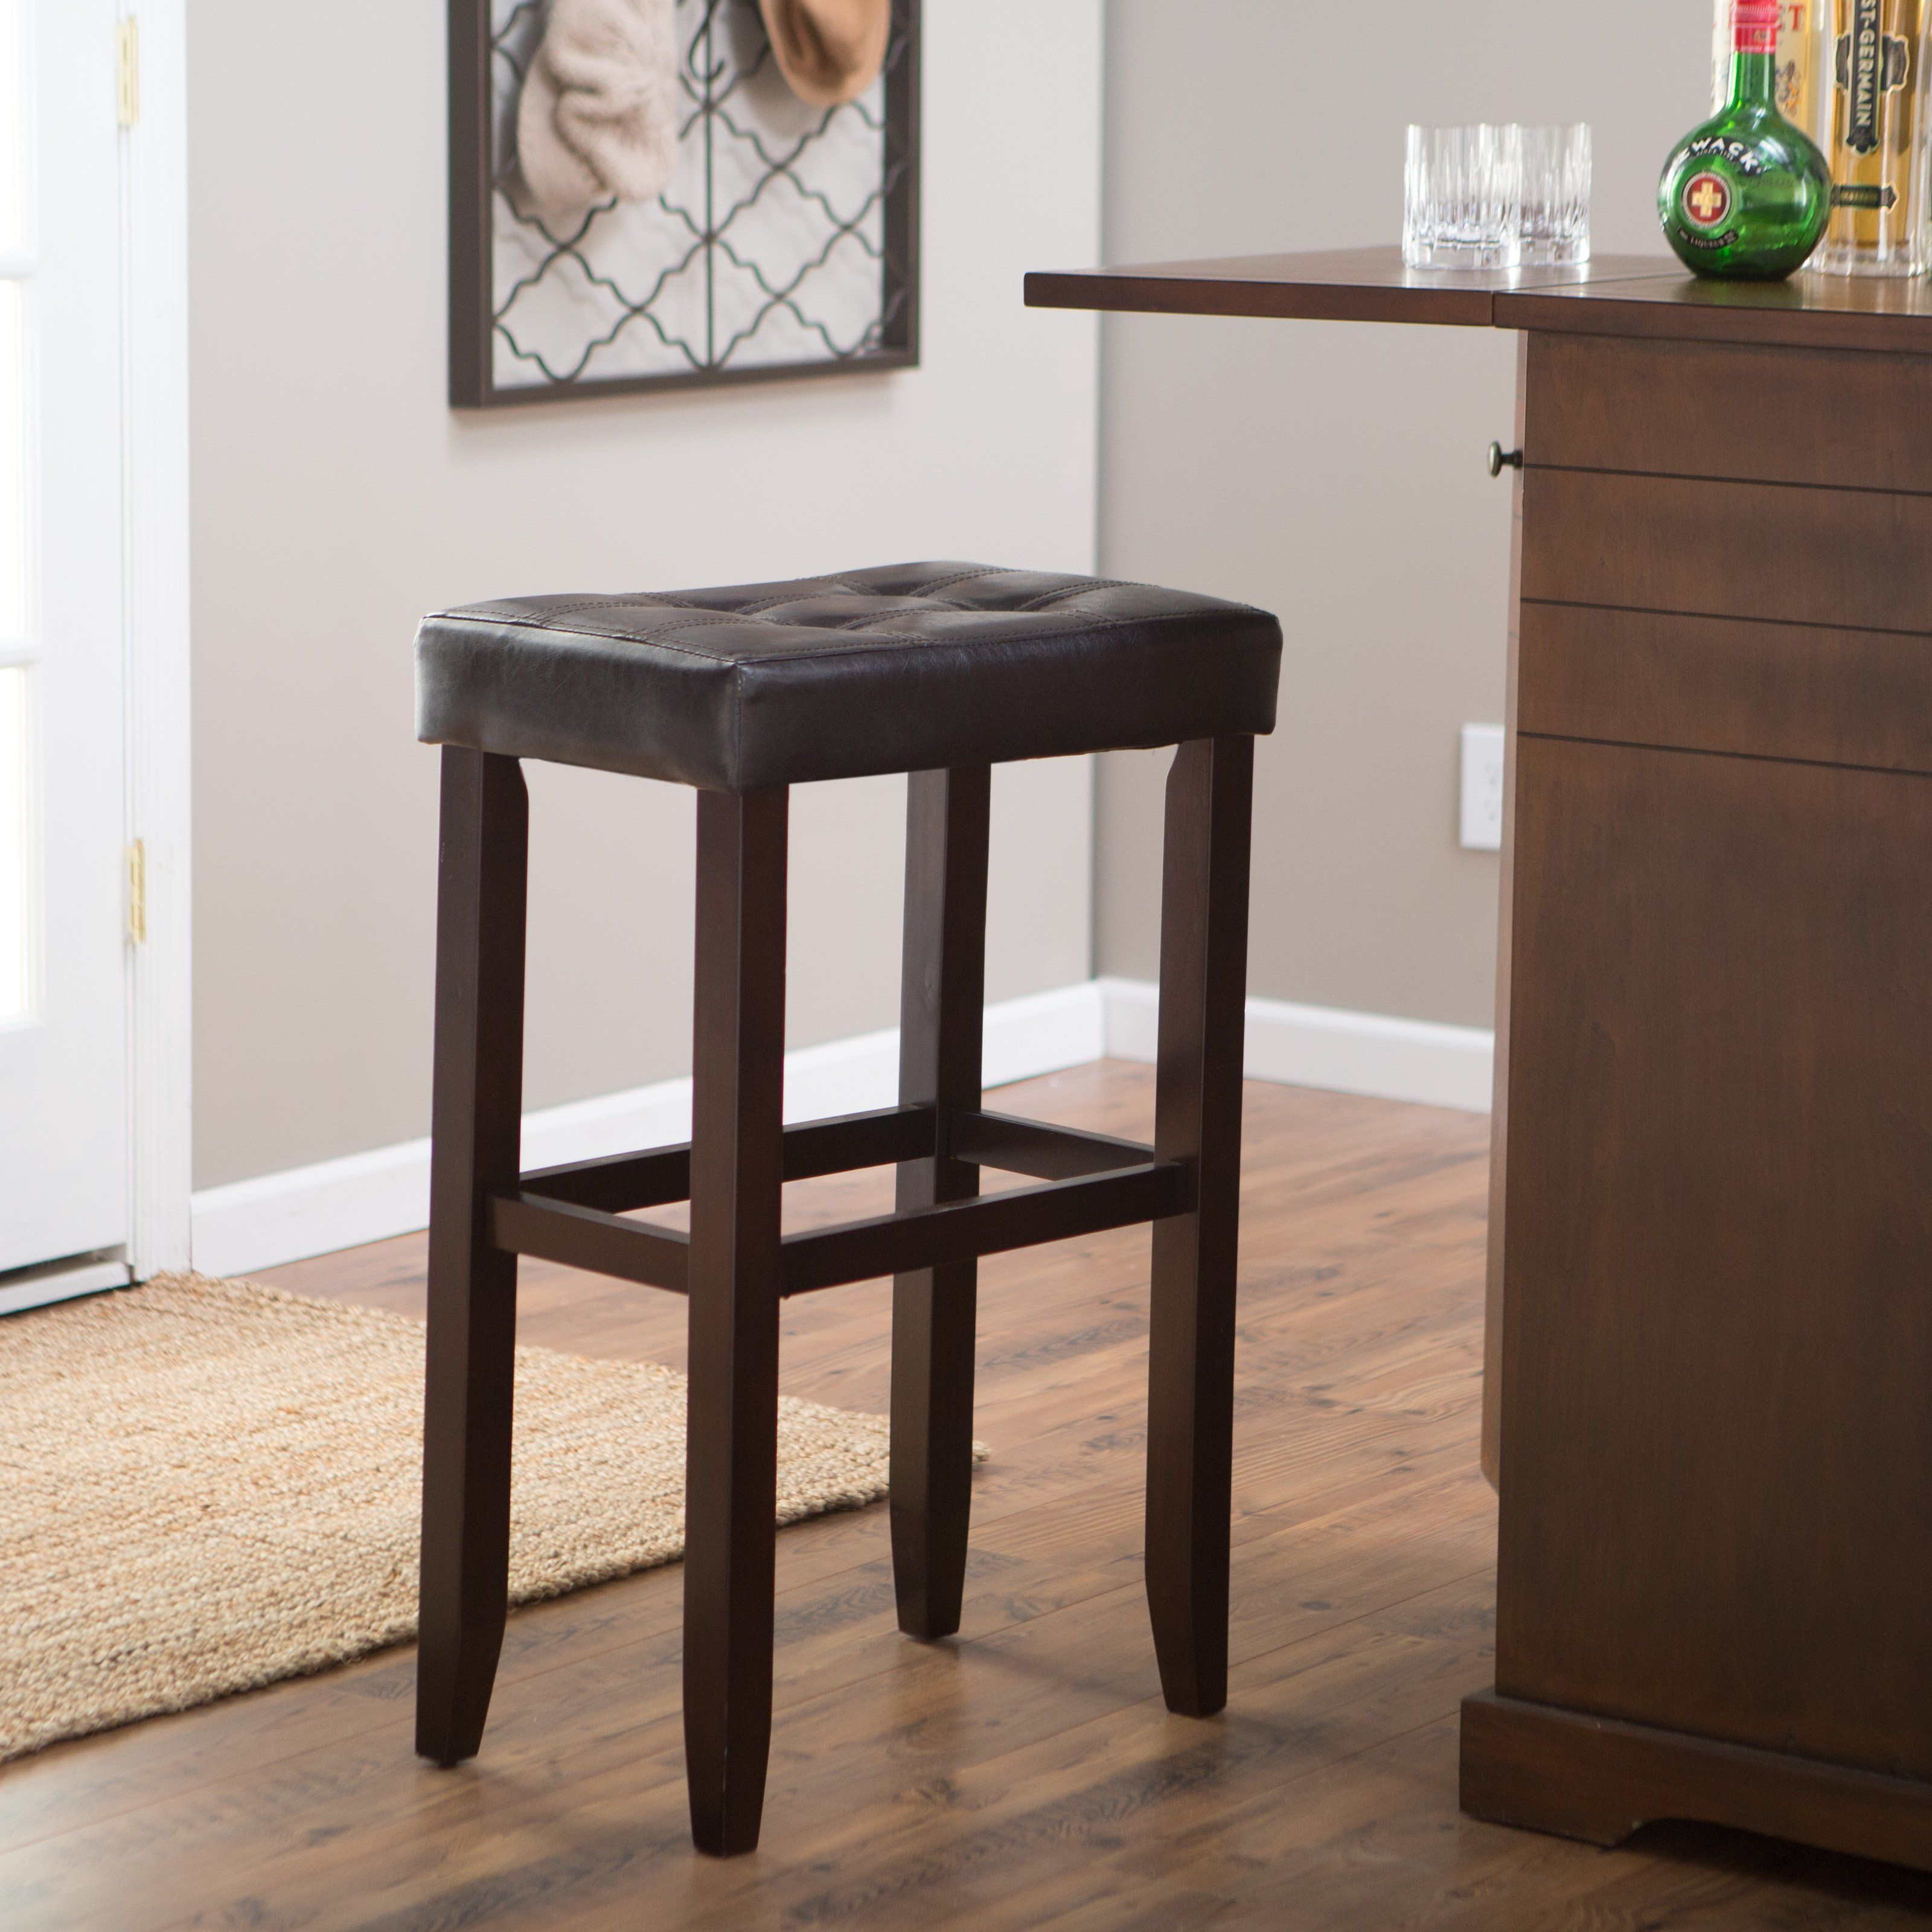 Palazzo Inch Extra Tall Saddle Bar Stool Brown Simple and space saving the Palazzo Inch Backless Saddle Bar Stool Brown has a modern